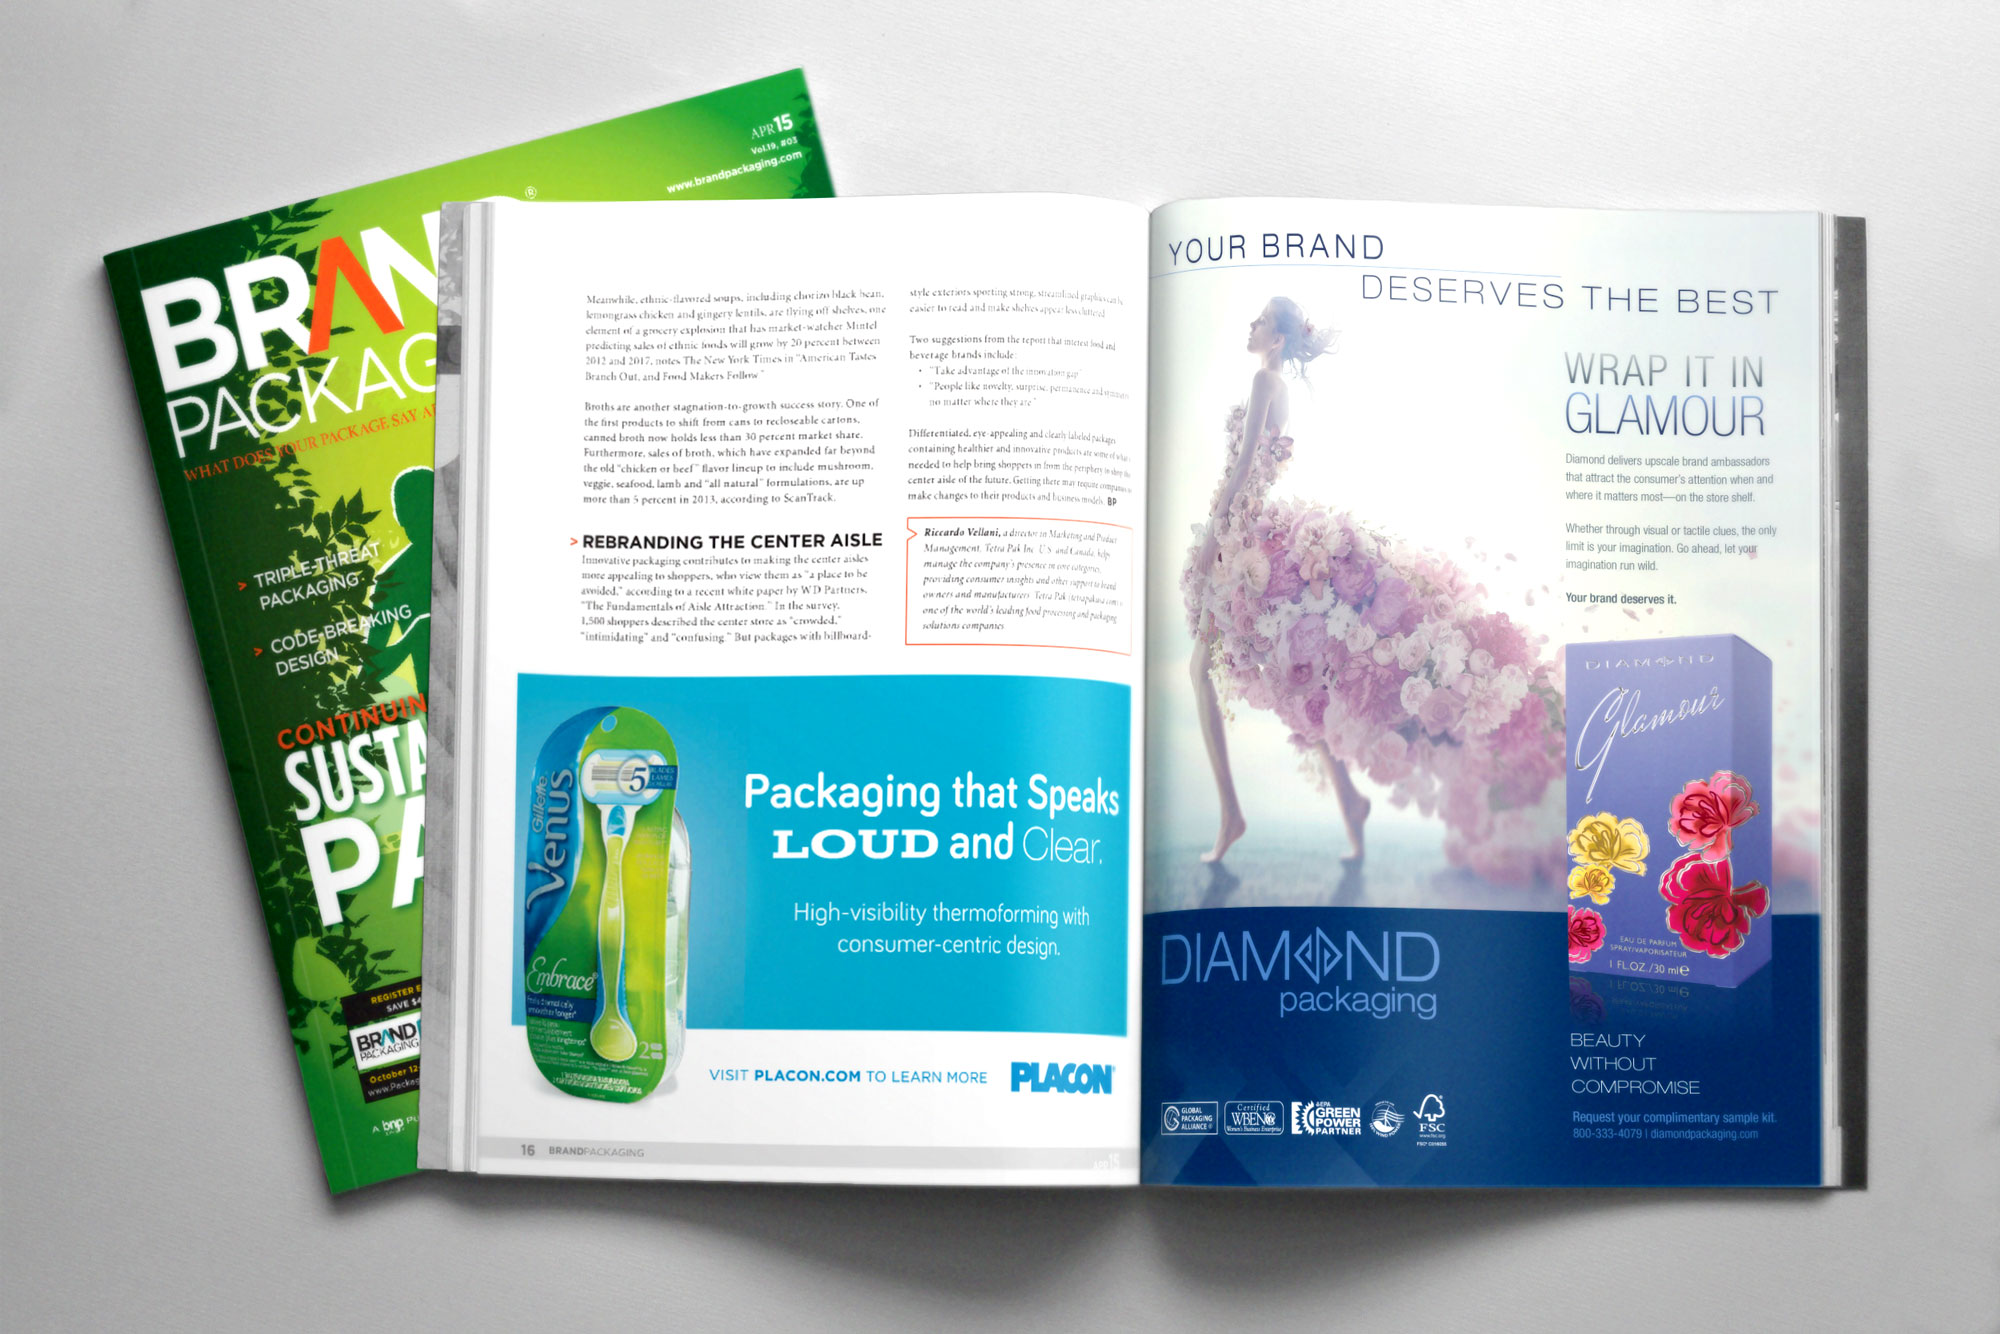 Brand Packaging Magazine Spread and Cover